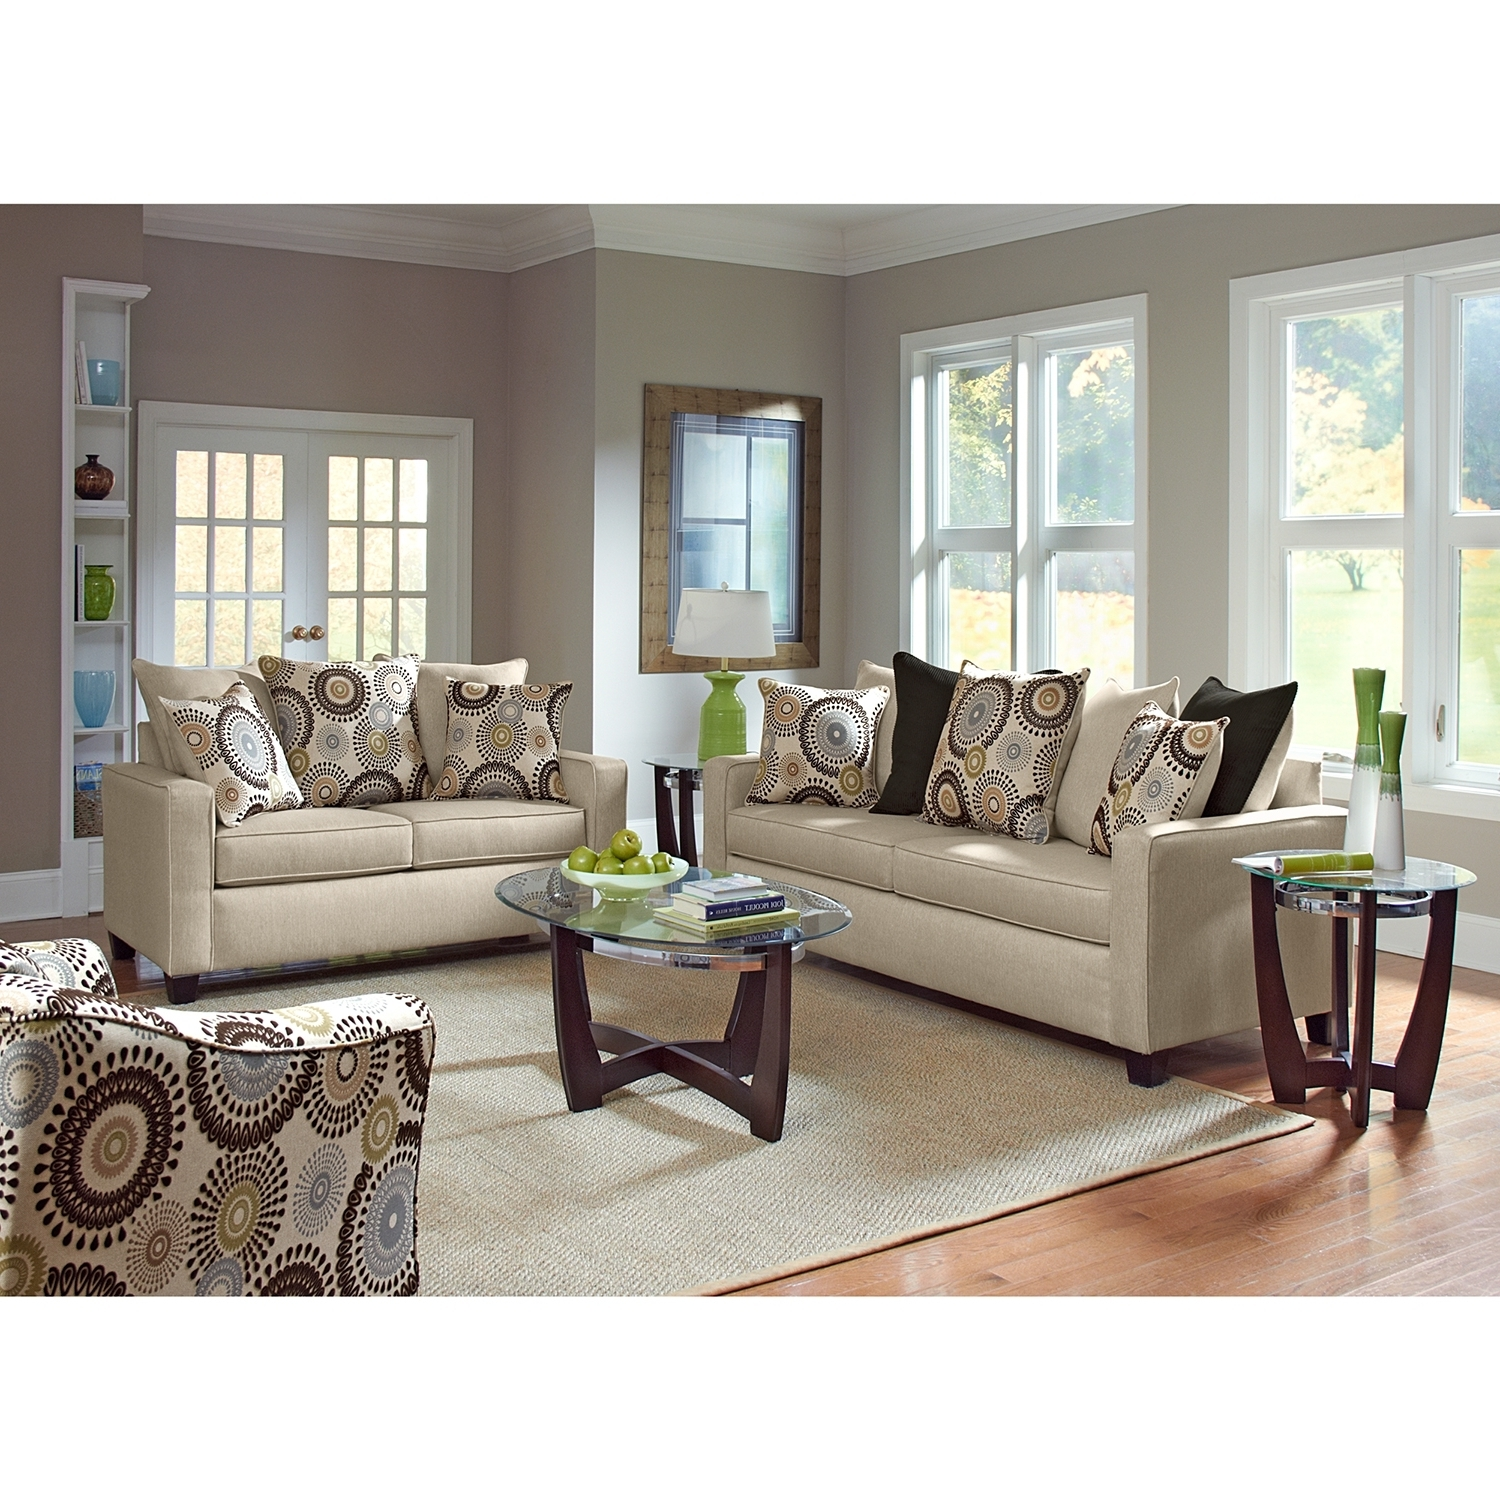 Most Current Value City Sofas For Livingroom : Value City Furniture Living Room Chairs Tables Sofas (View 9 of 15)